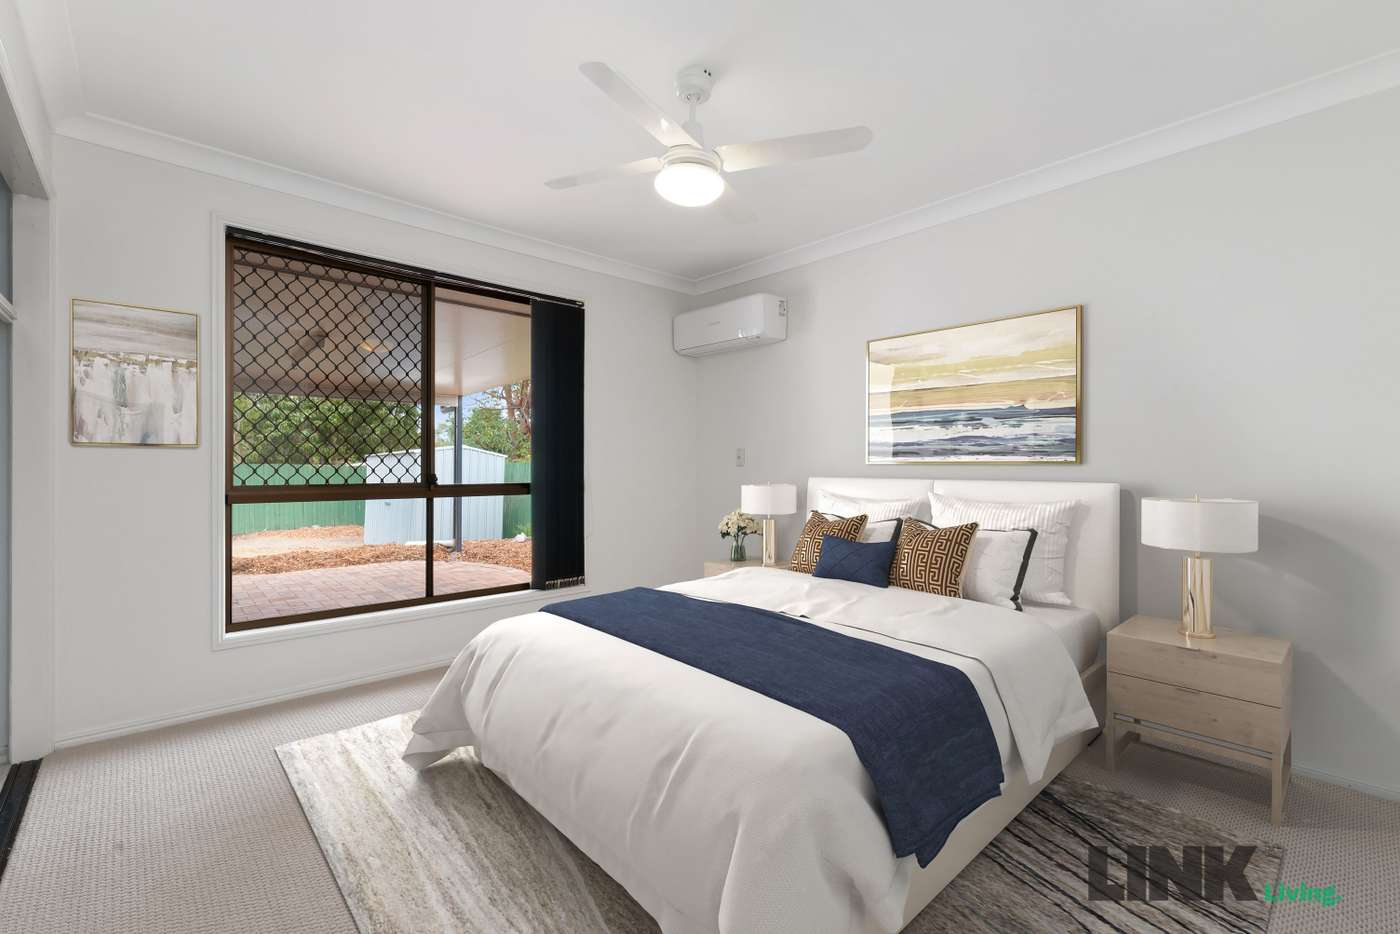 Fifth view of Homely house listing, 13 BARCREST COURT, Crestmead QLD 4132